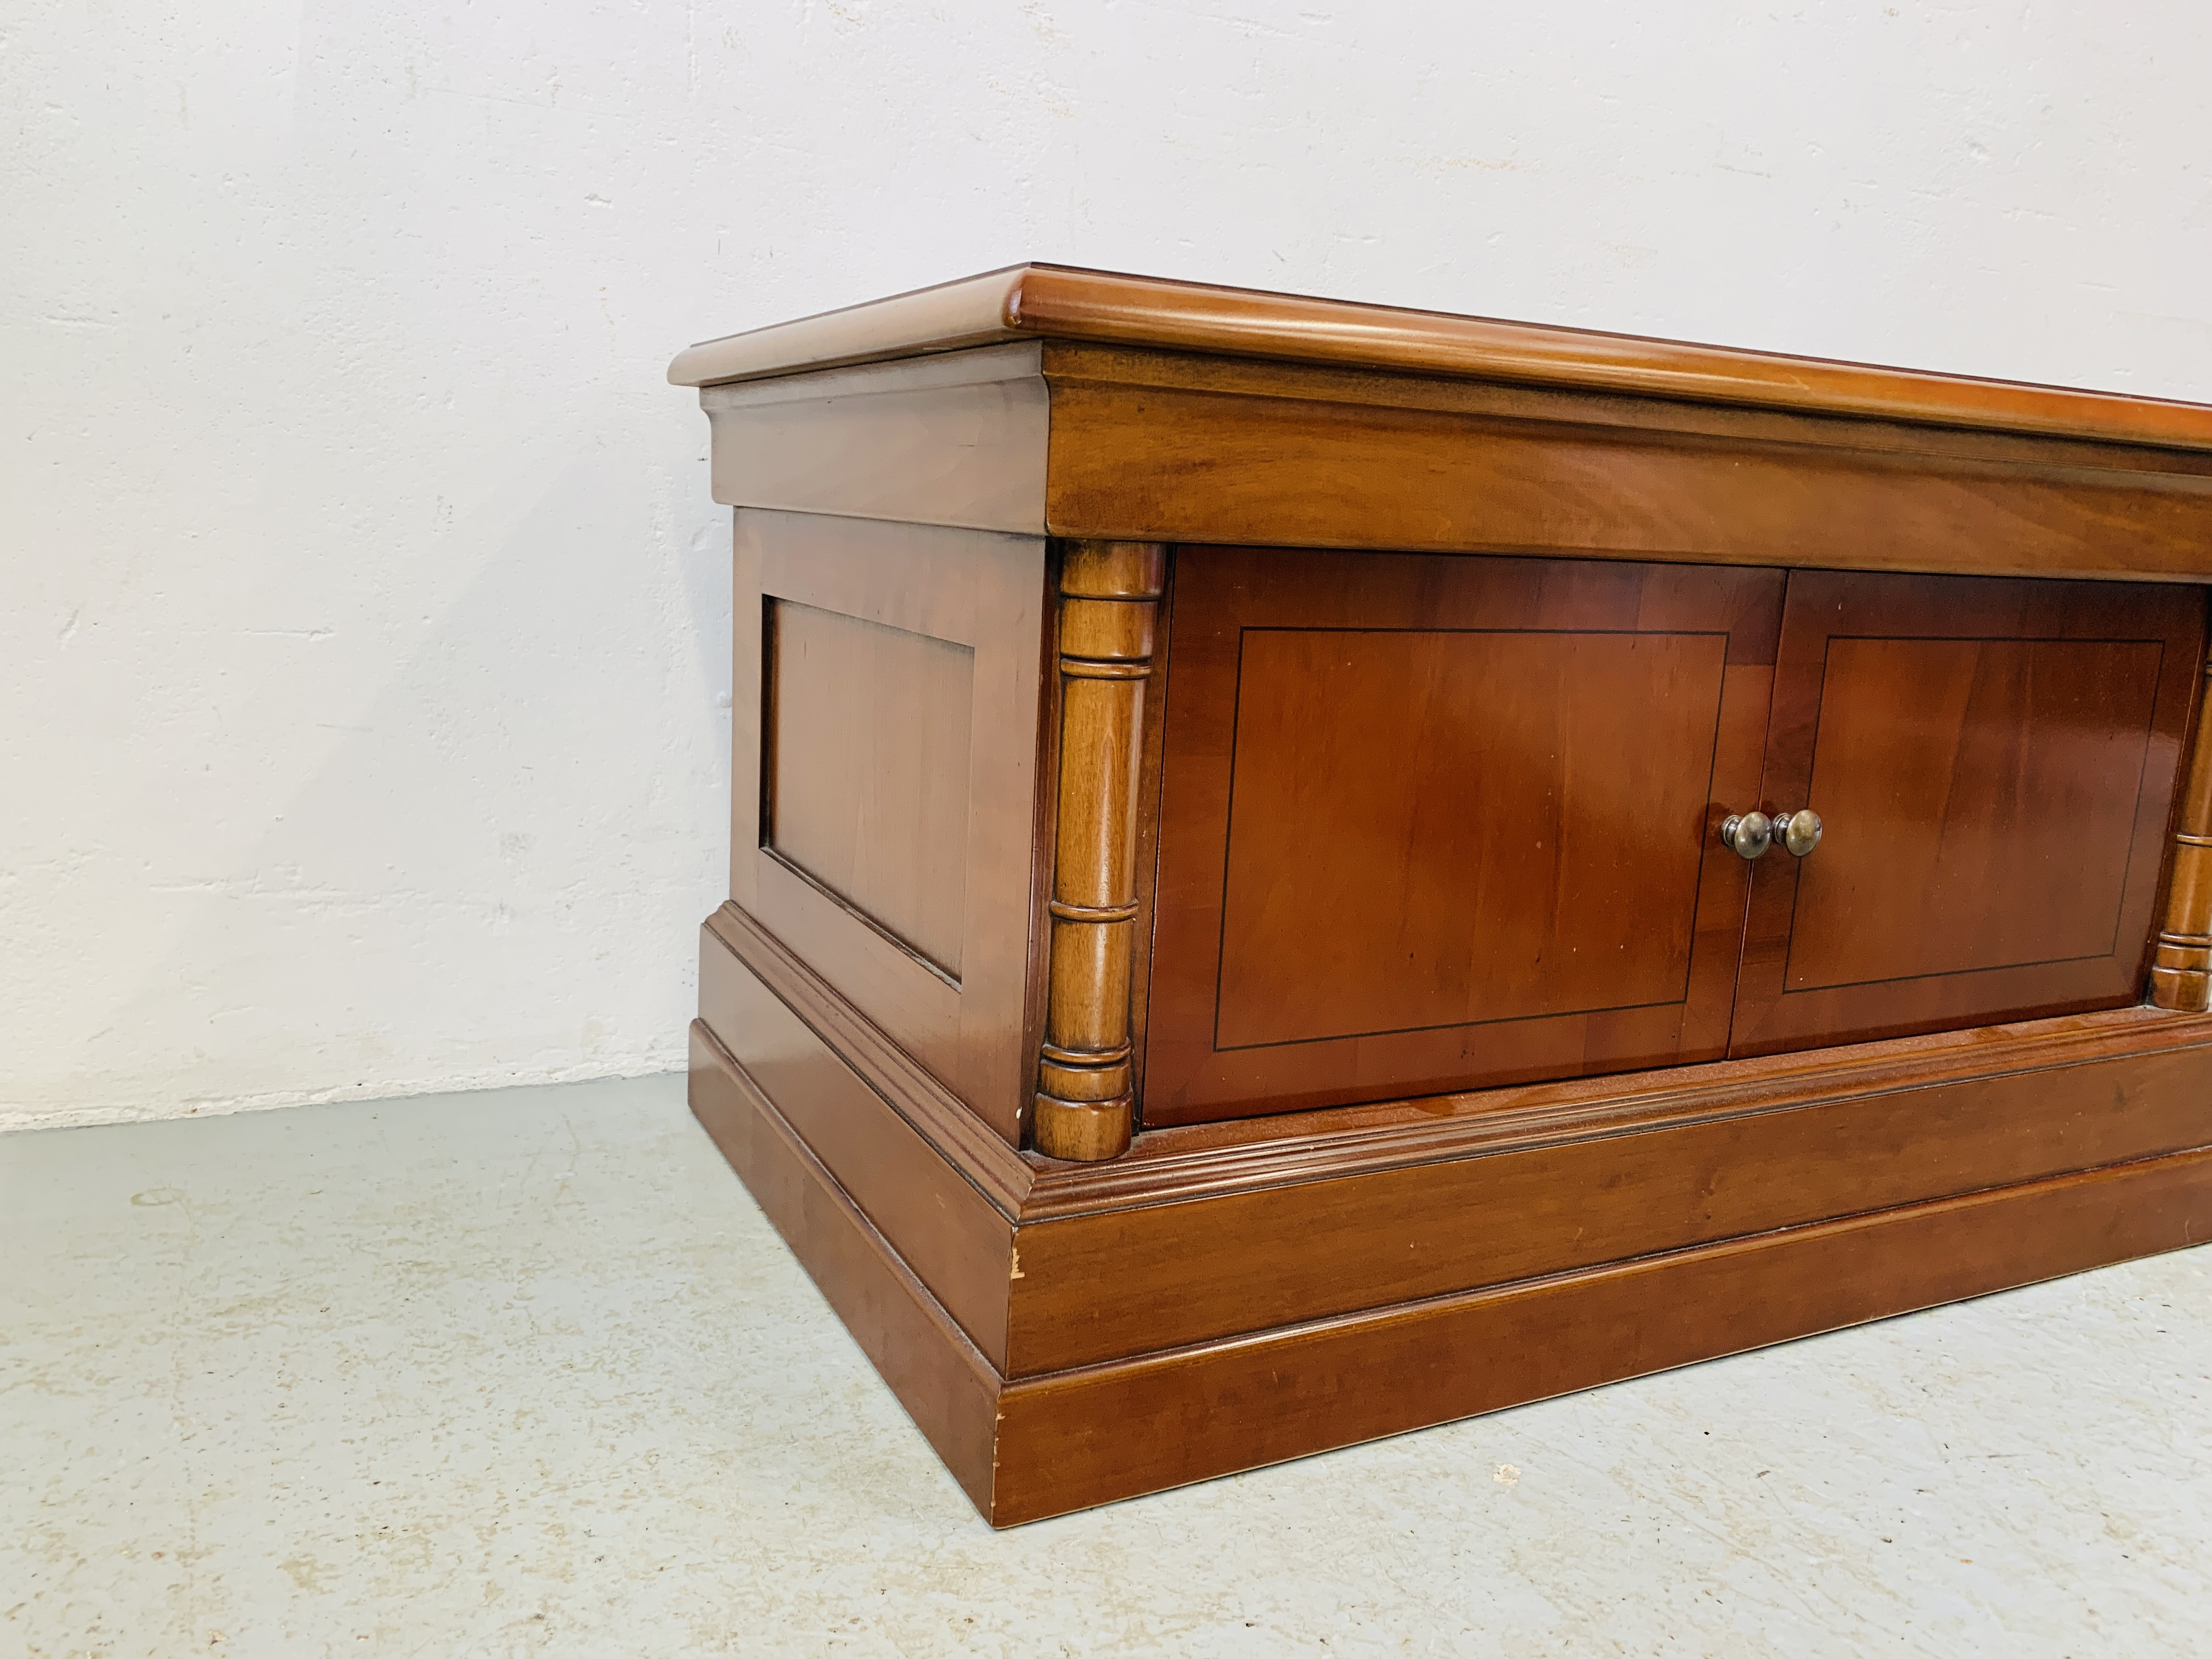 A MODERN CHERRYWOOD FINISH TELEVISION STAND - Image 7 of 7